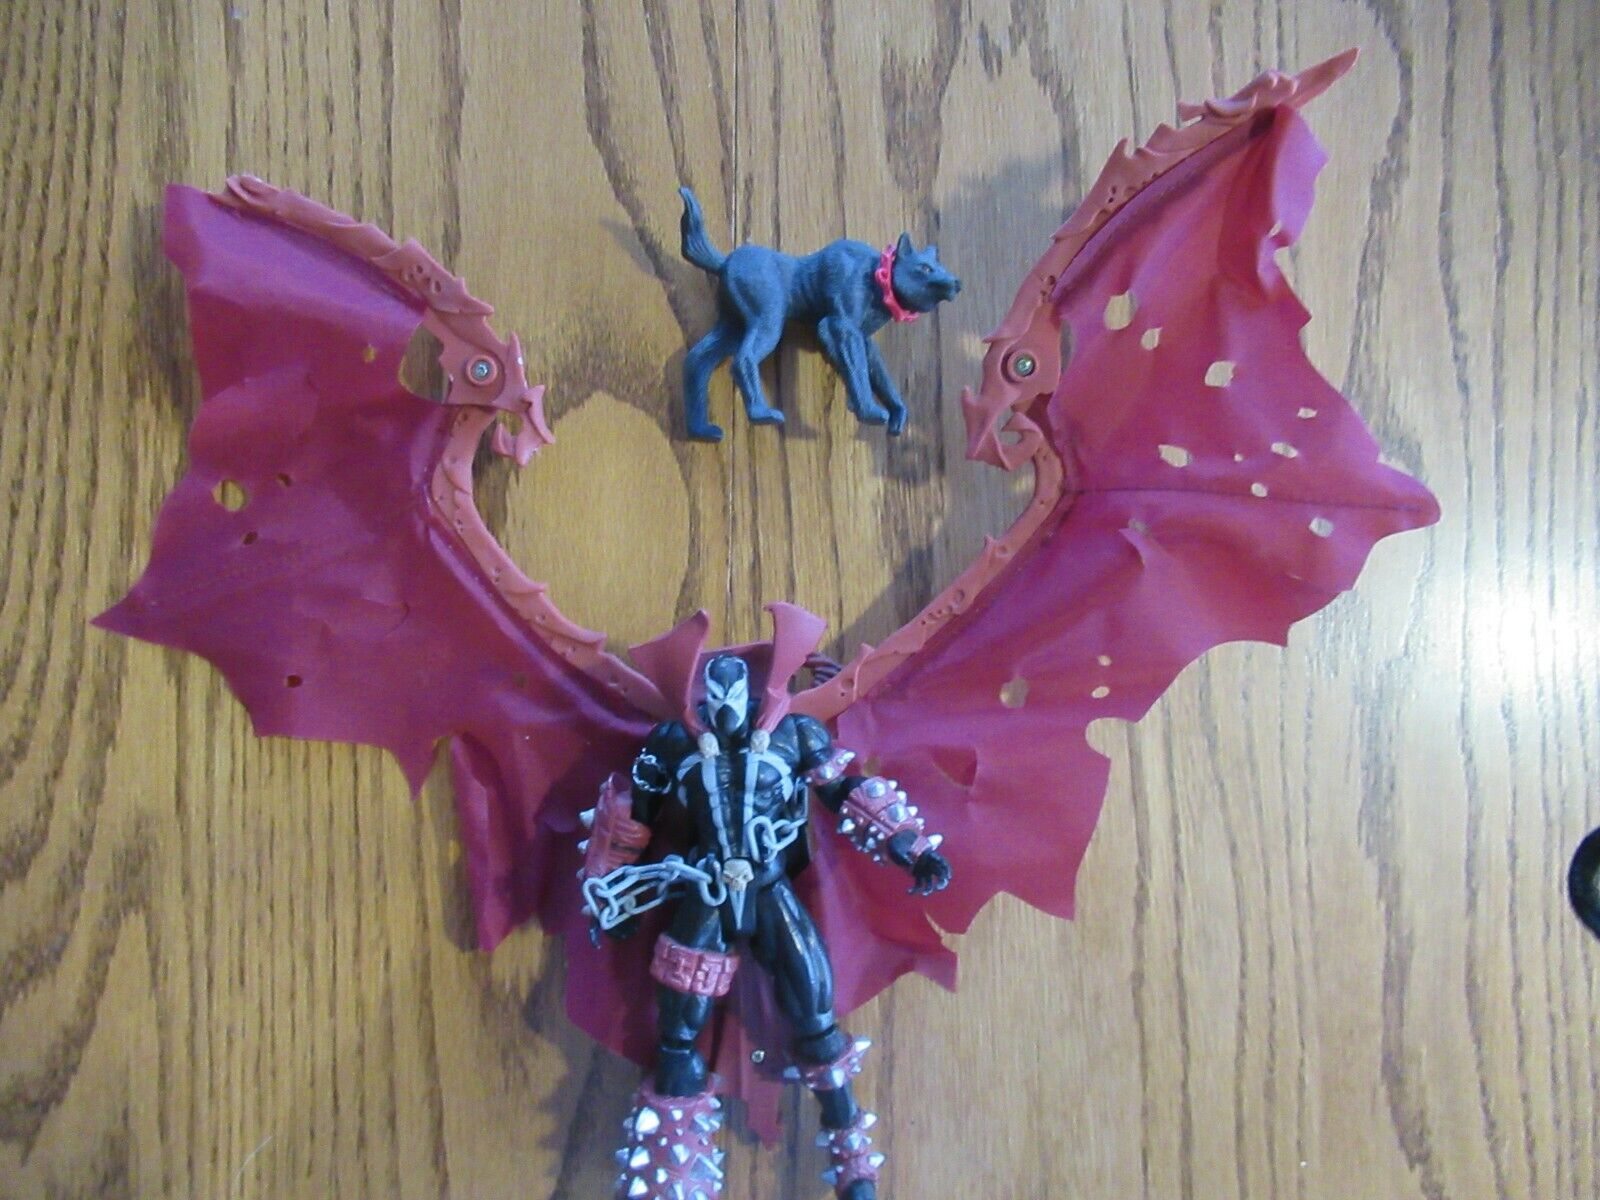 Mcfarlane Special Edition Spawn III Action Figure With Wolf Series 7 on eBay thumbnail